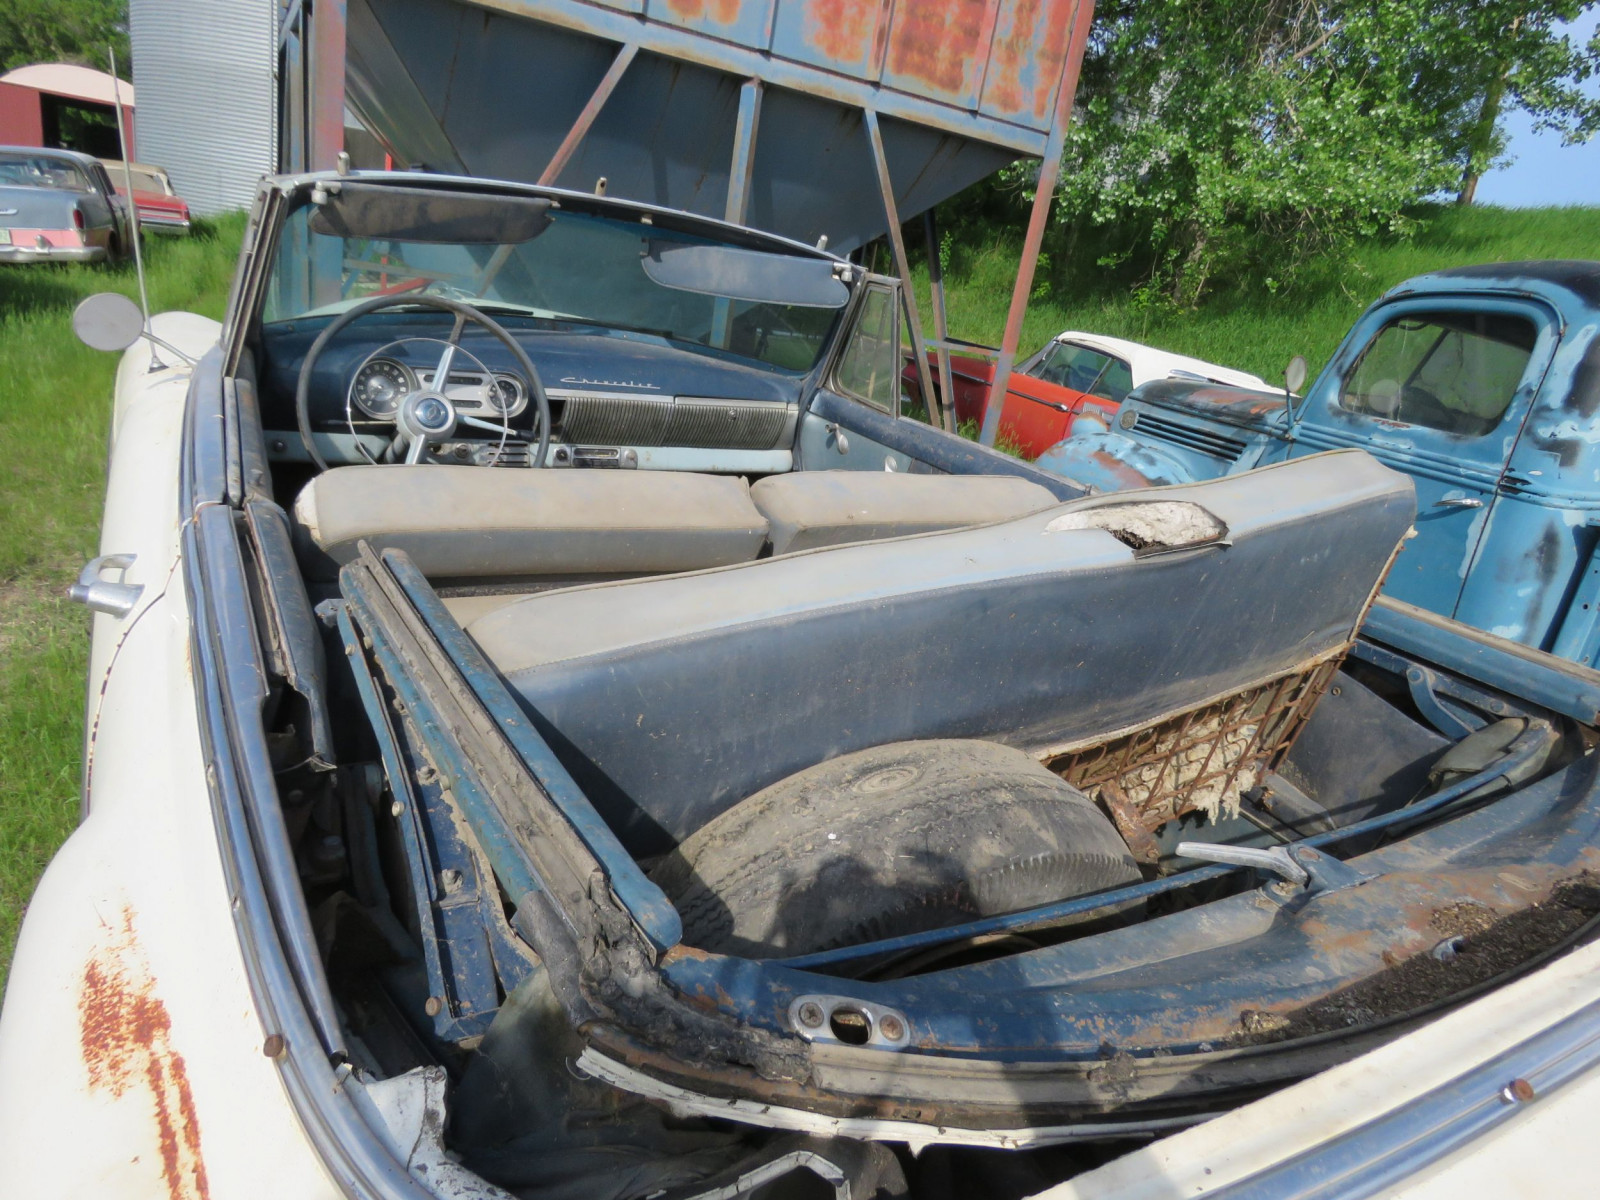 1953 Chevrolet Convertible for Restore - Image 7